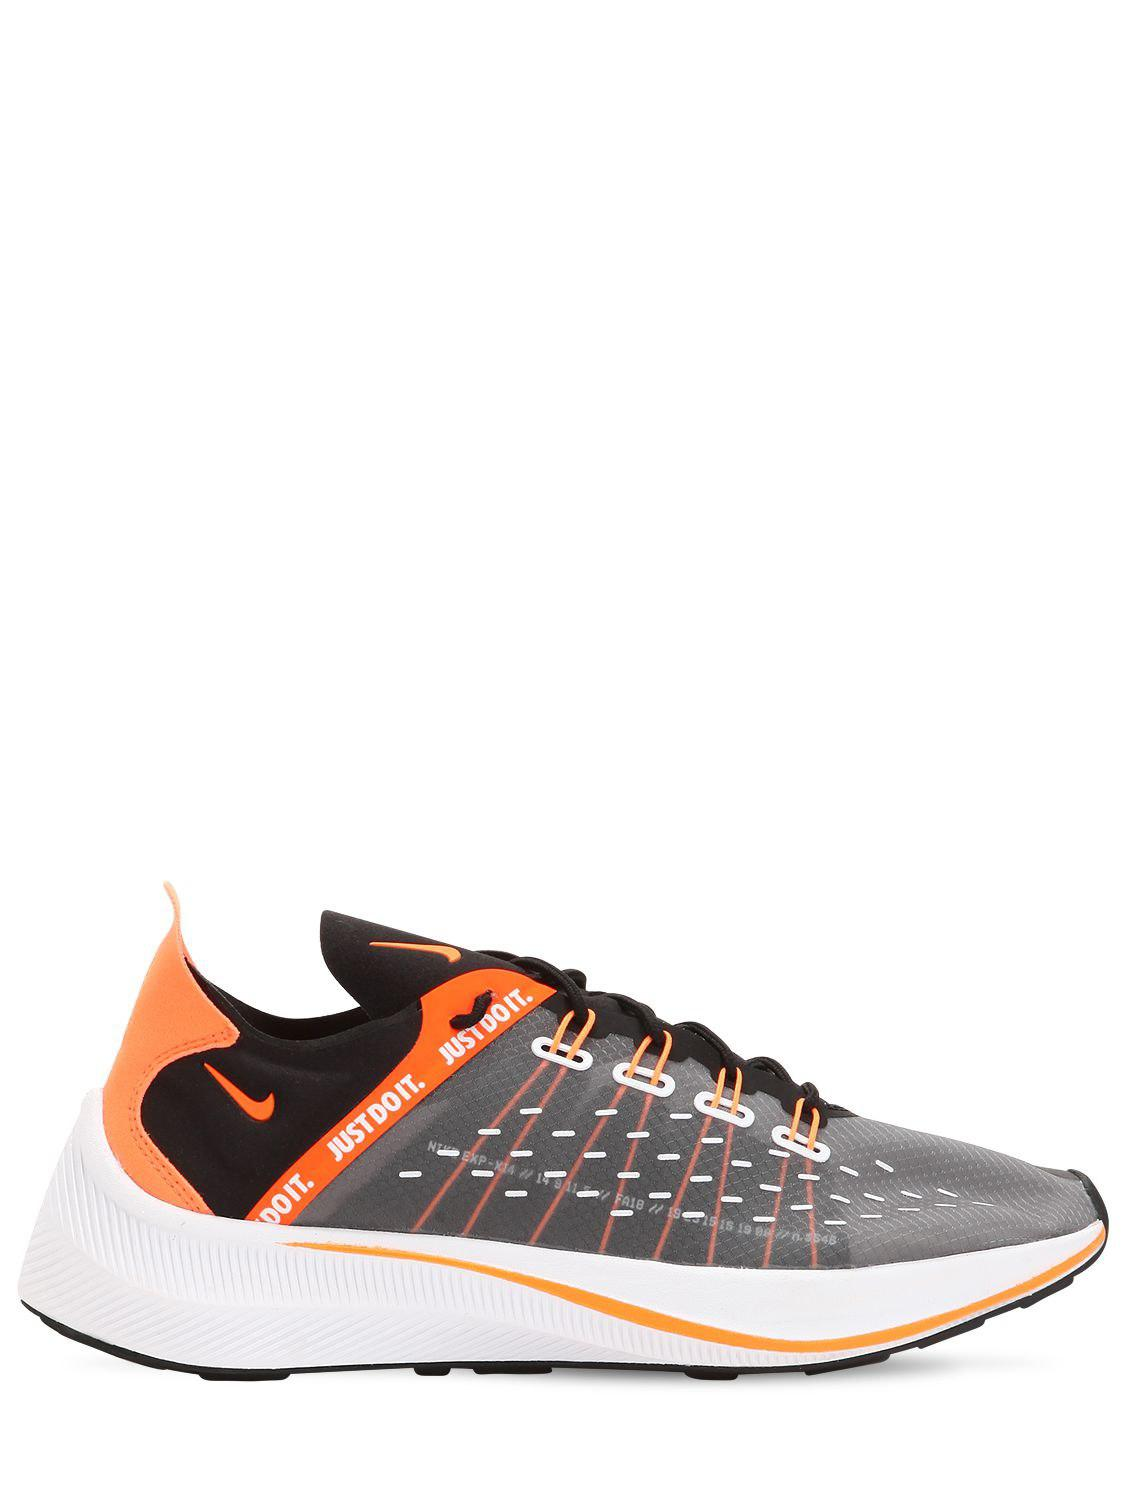 eed22492ce Lyst - Nike Future Fast Just Do It Sneakers in Black for Men